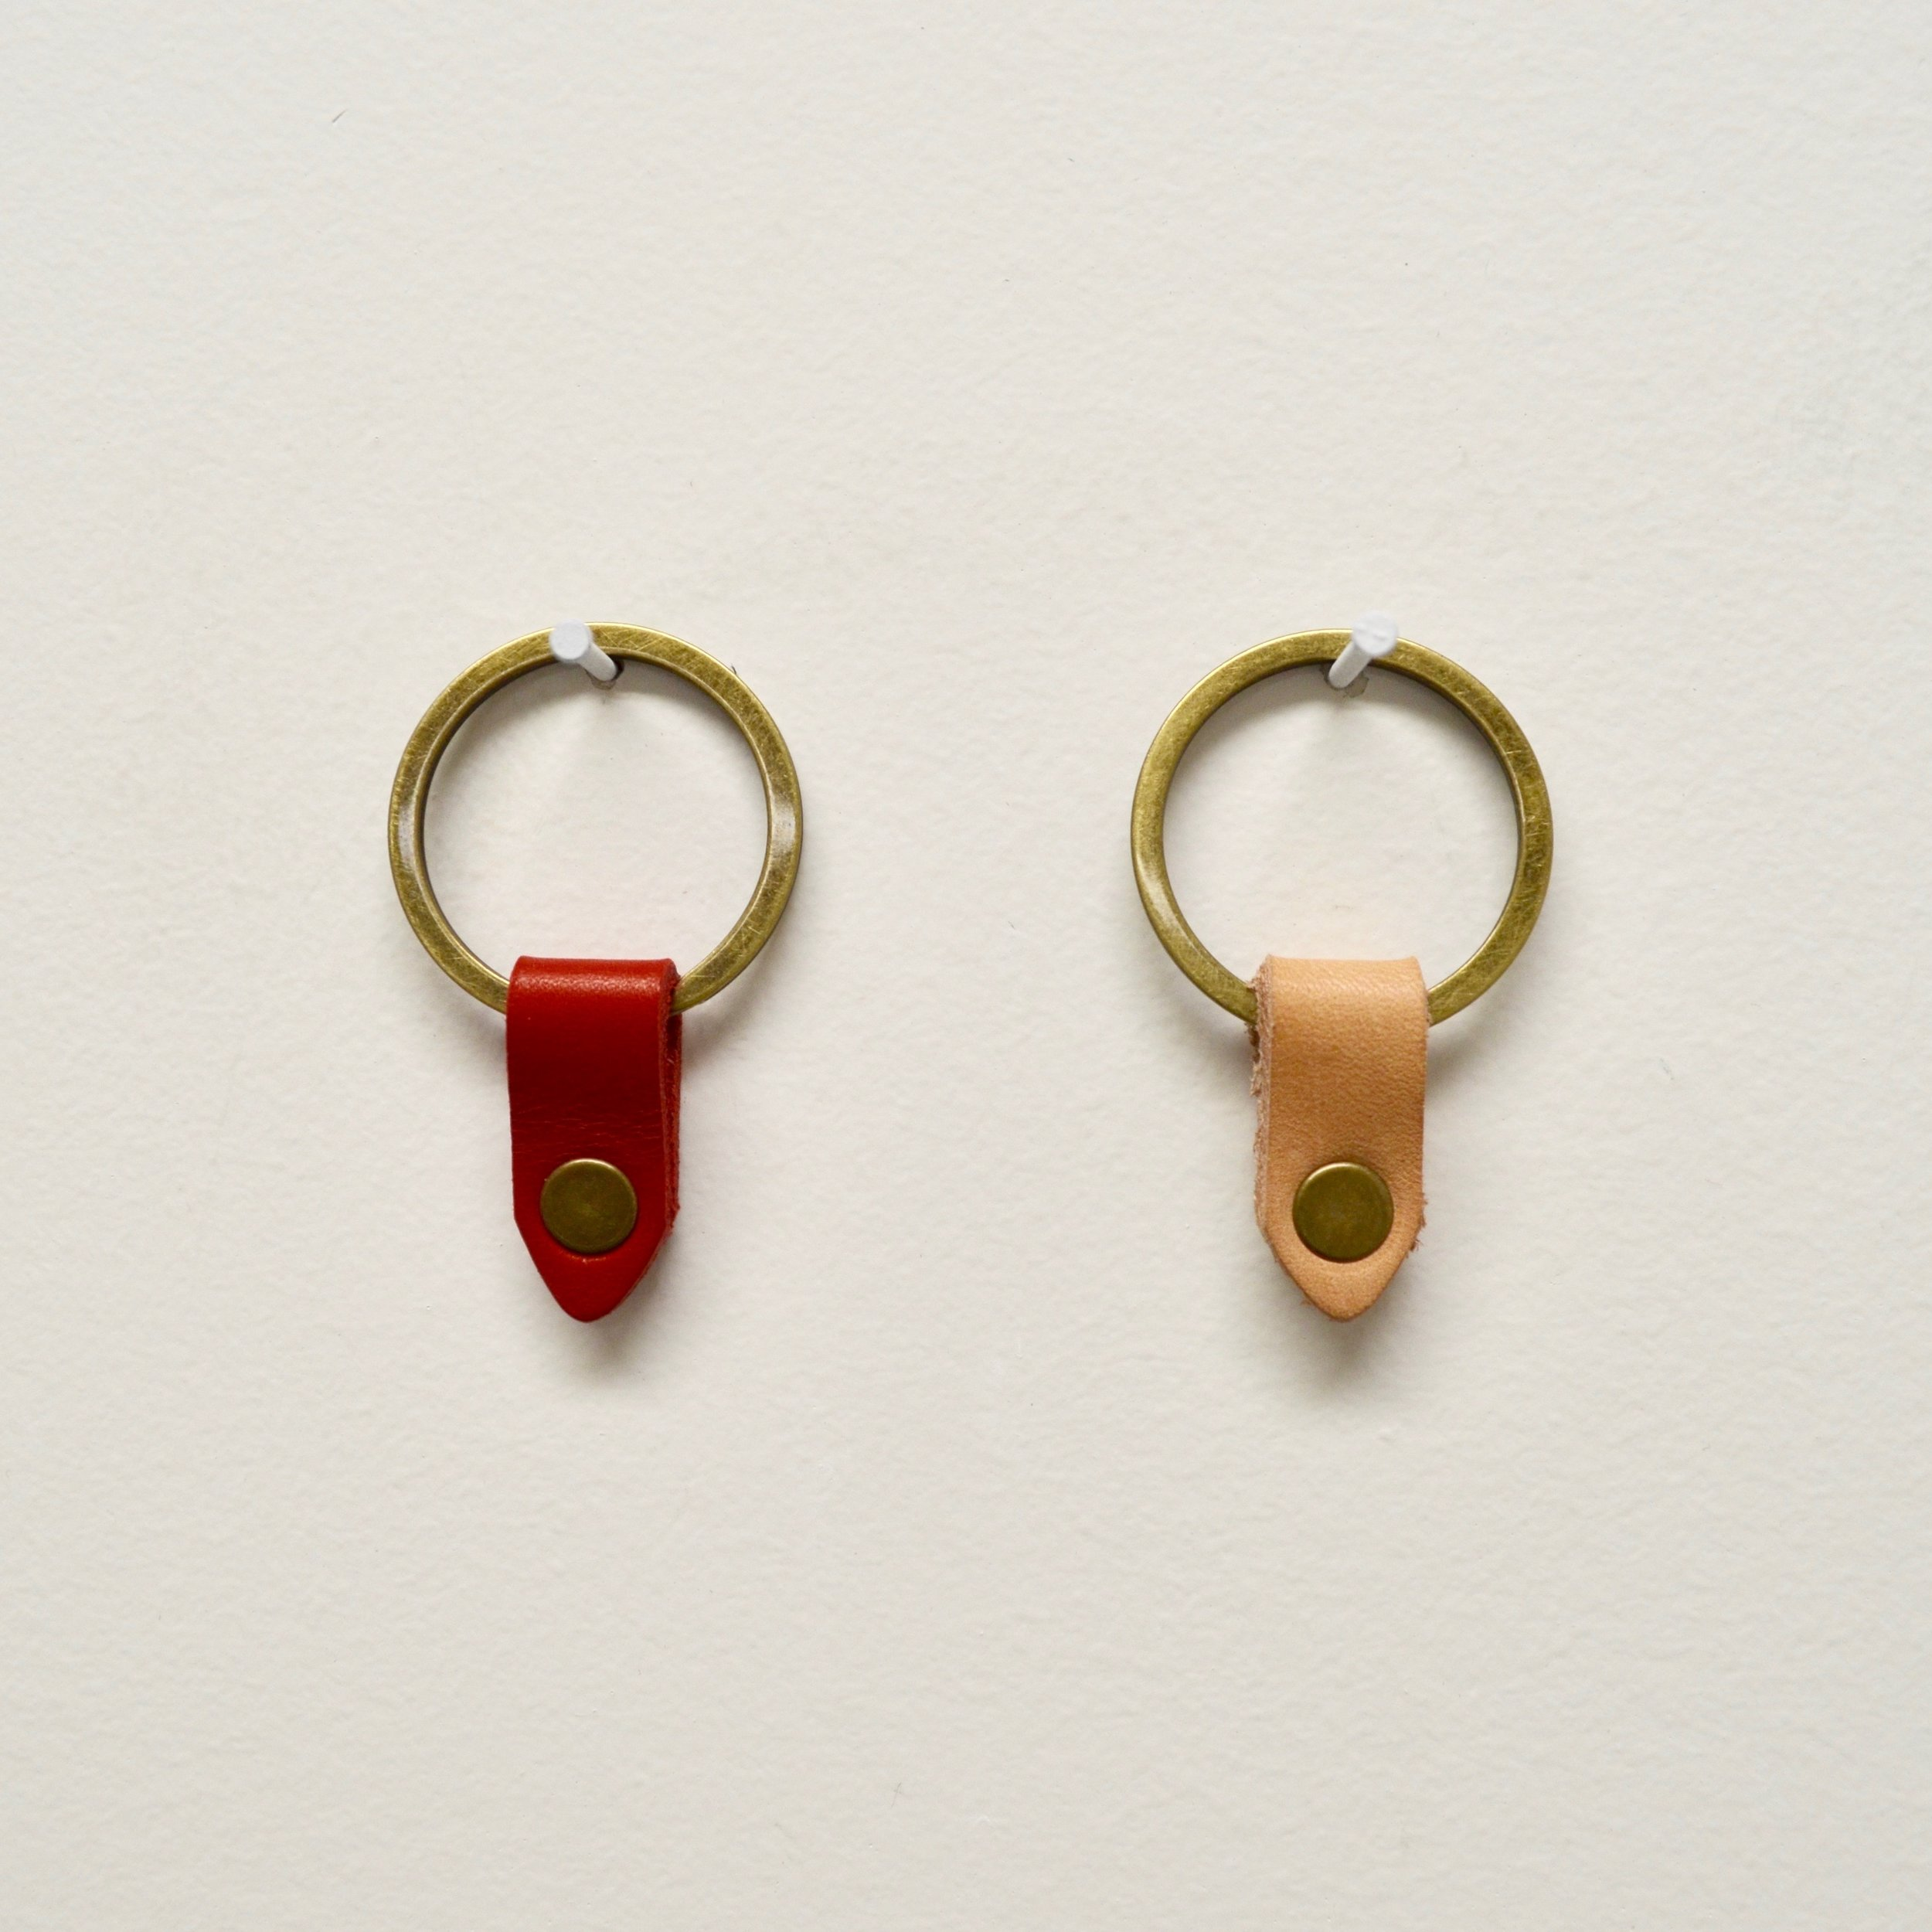 - LEATHER TAB KEYRING IN LIMITED EDITION RED & LIMITED EDITION NATURAL TAN